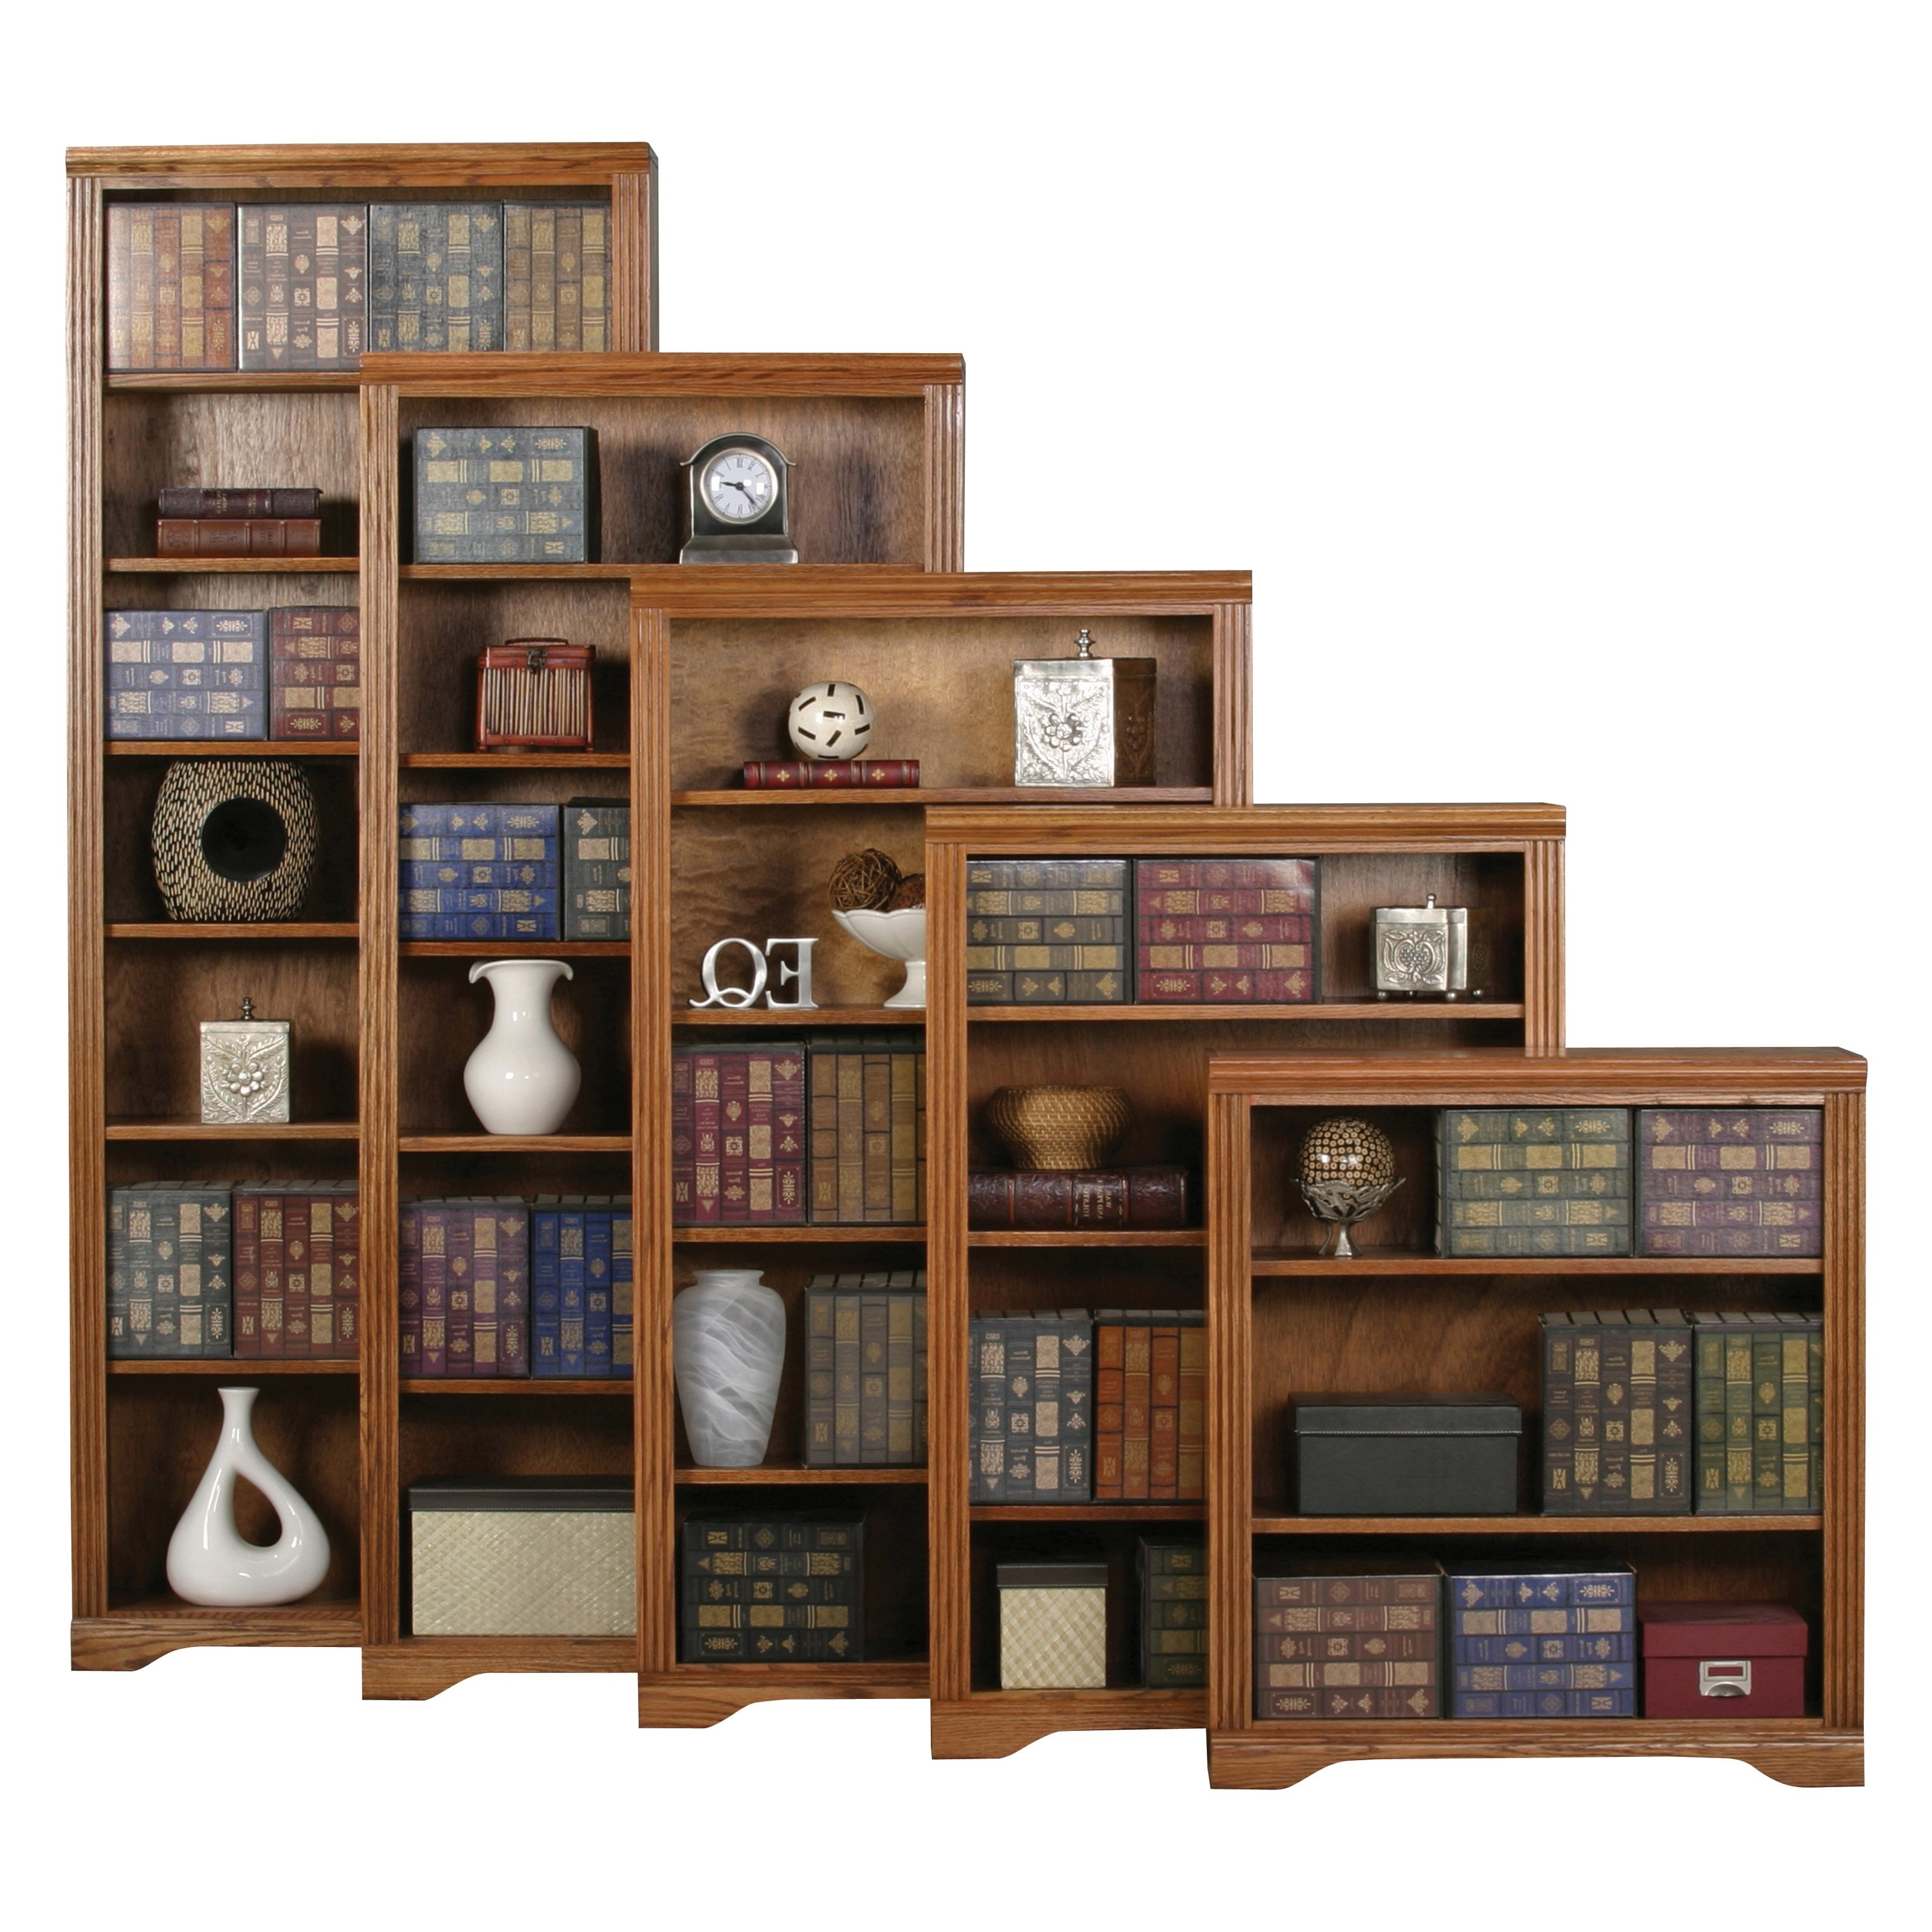 Staples Bookcases Within 2018 Decoration: Vivacious Staples Bookcases With Entrancing Design For (View 14 of 15)